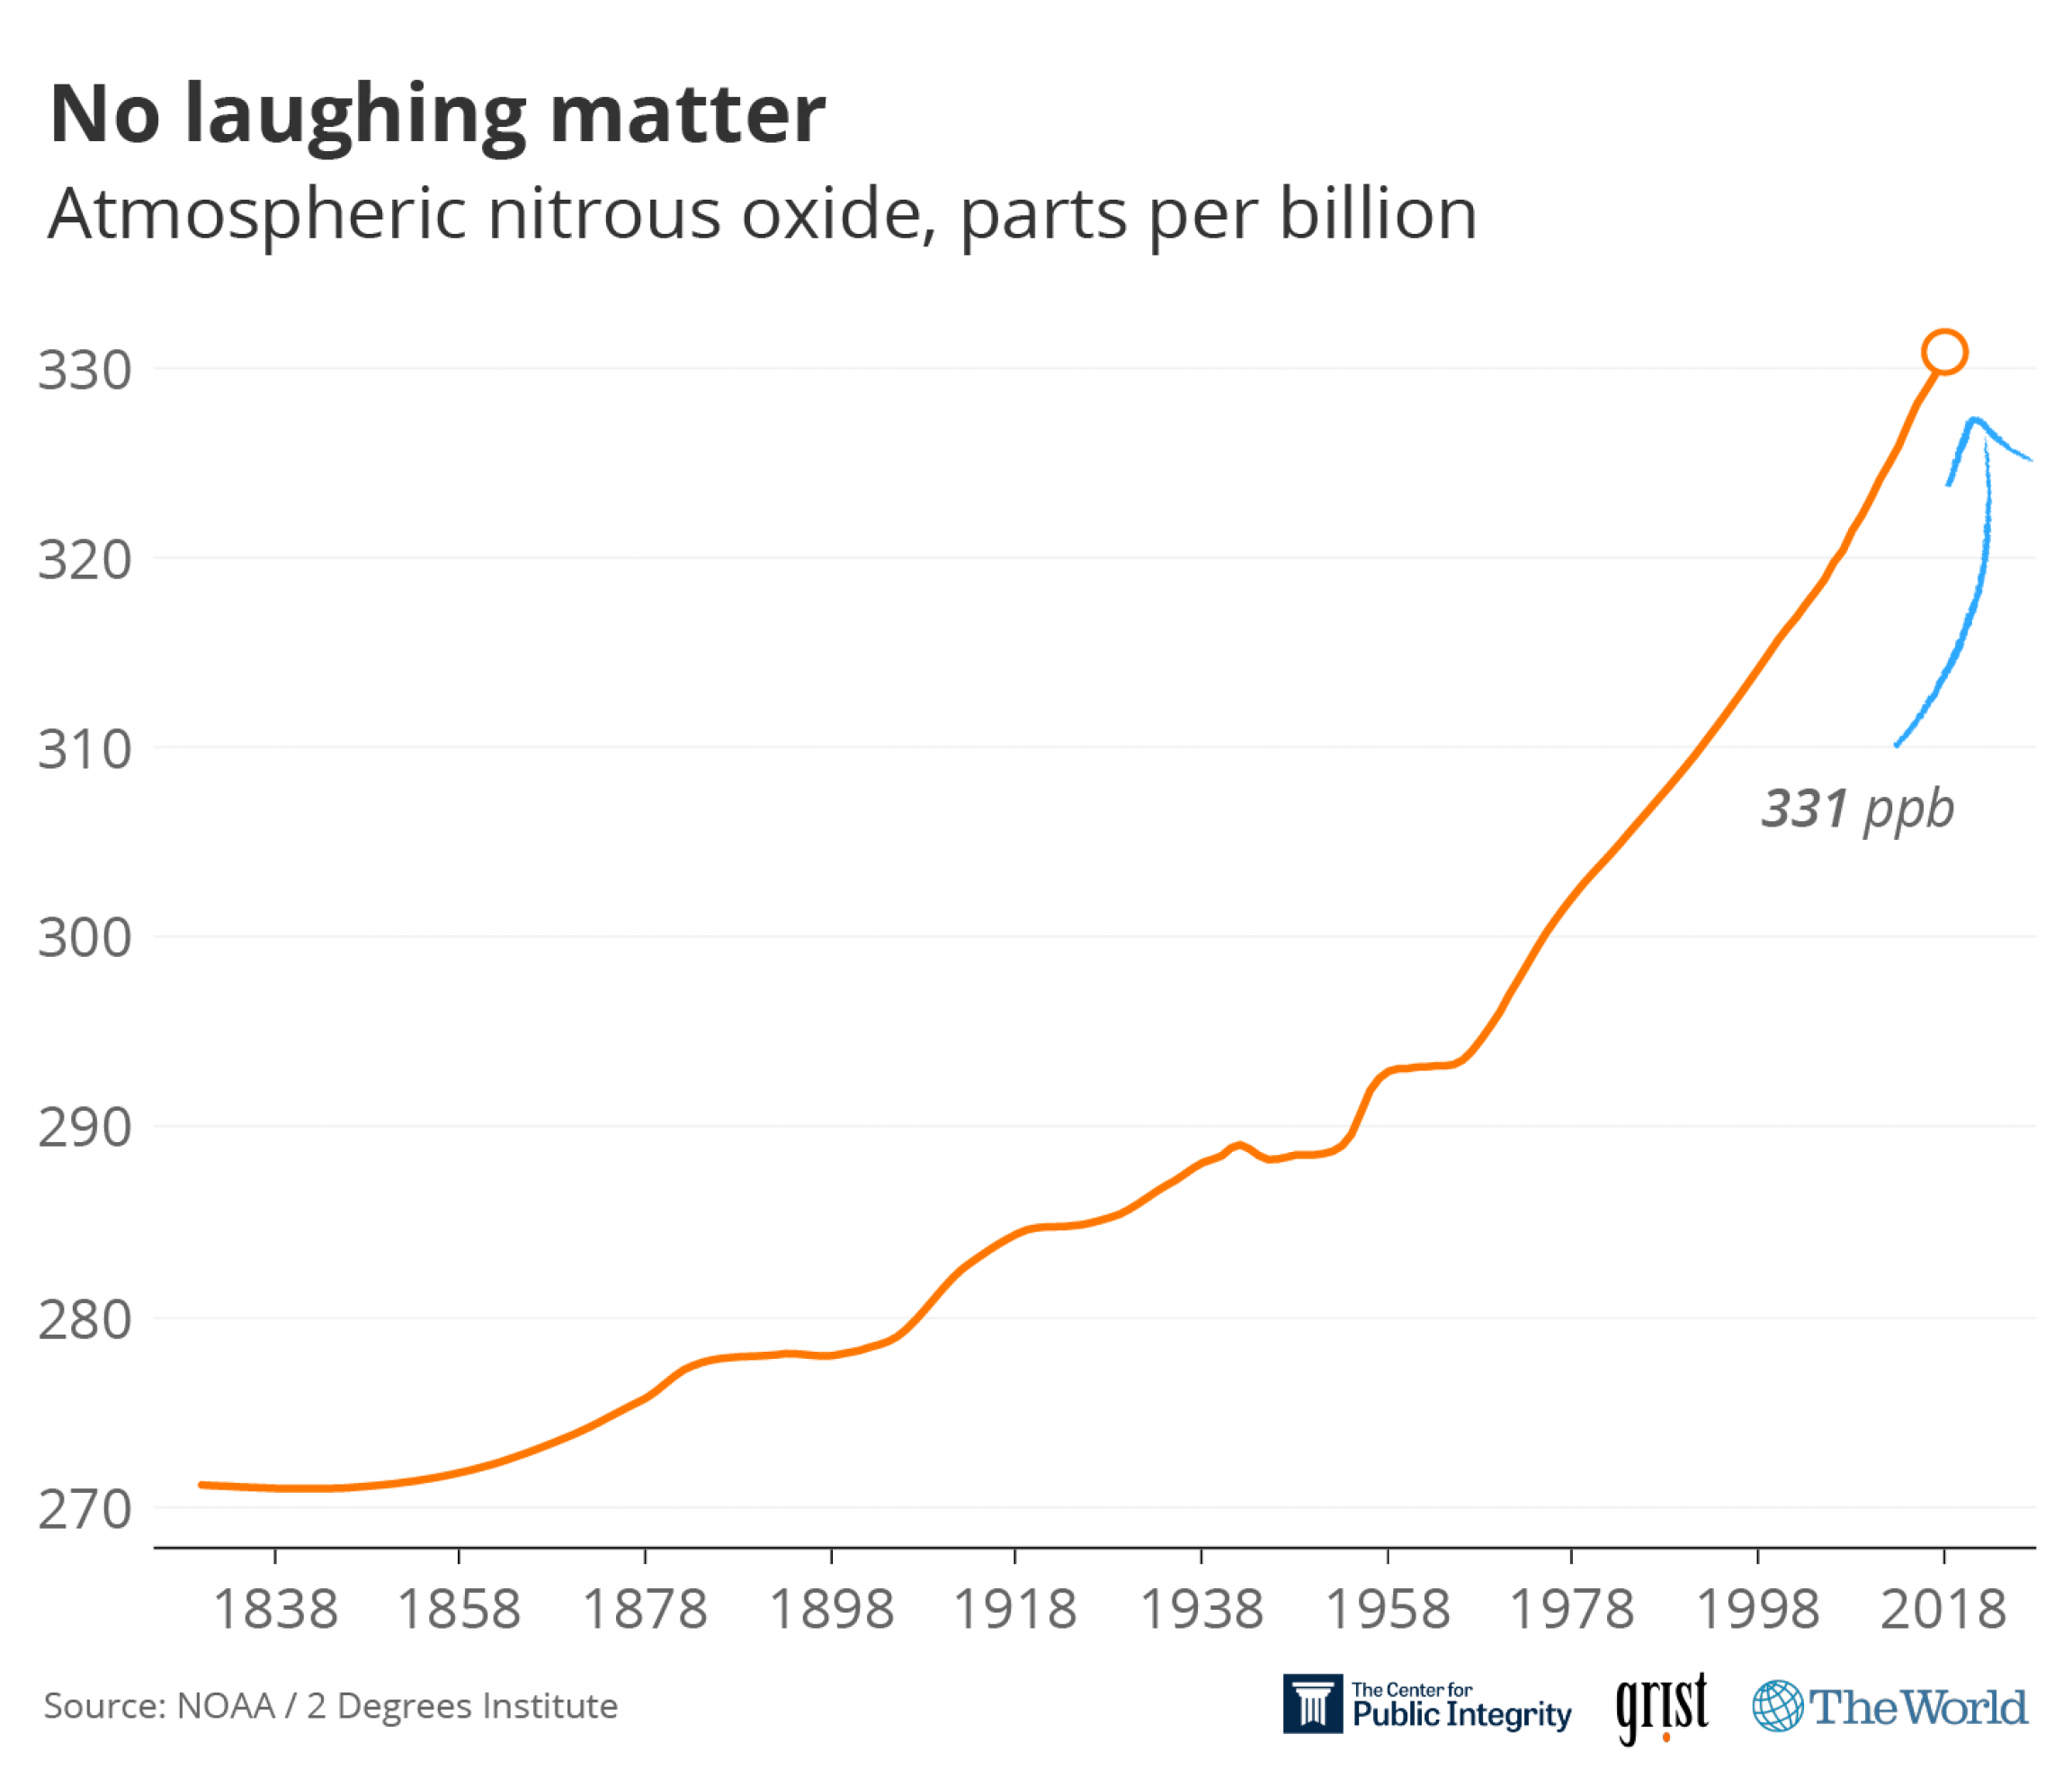 A graphic showing the atmospheric nitrous oxide, parts per billion steadily moving up for more than 100 years.